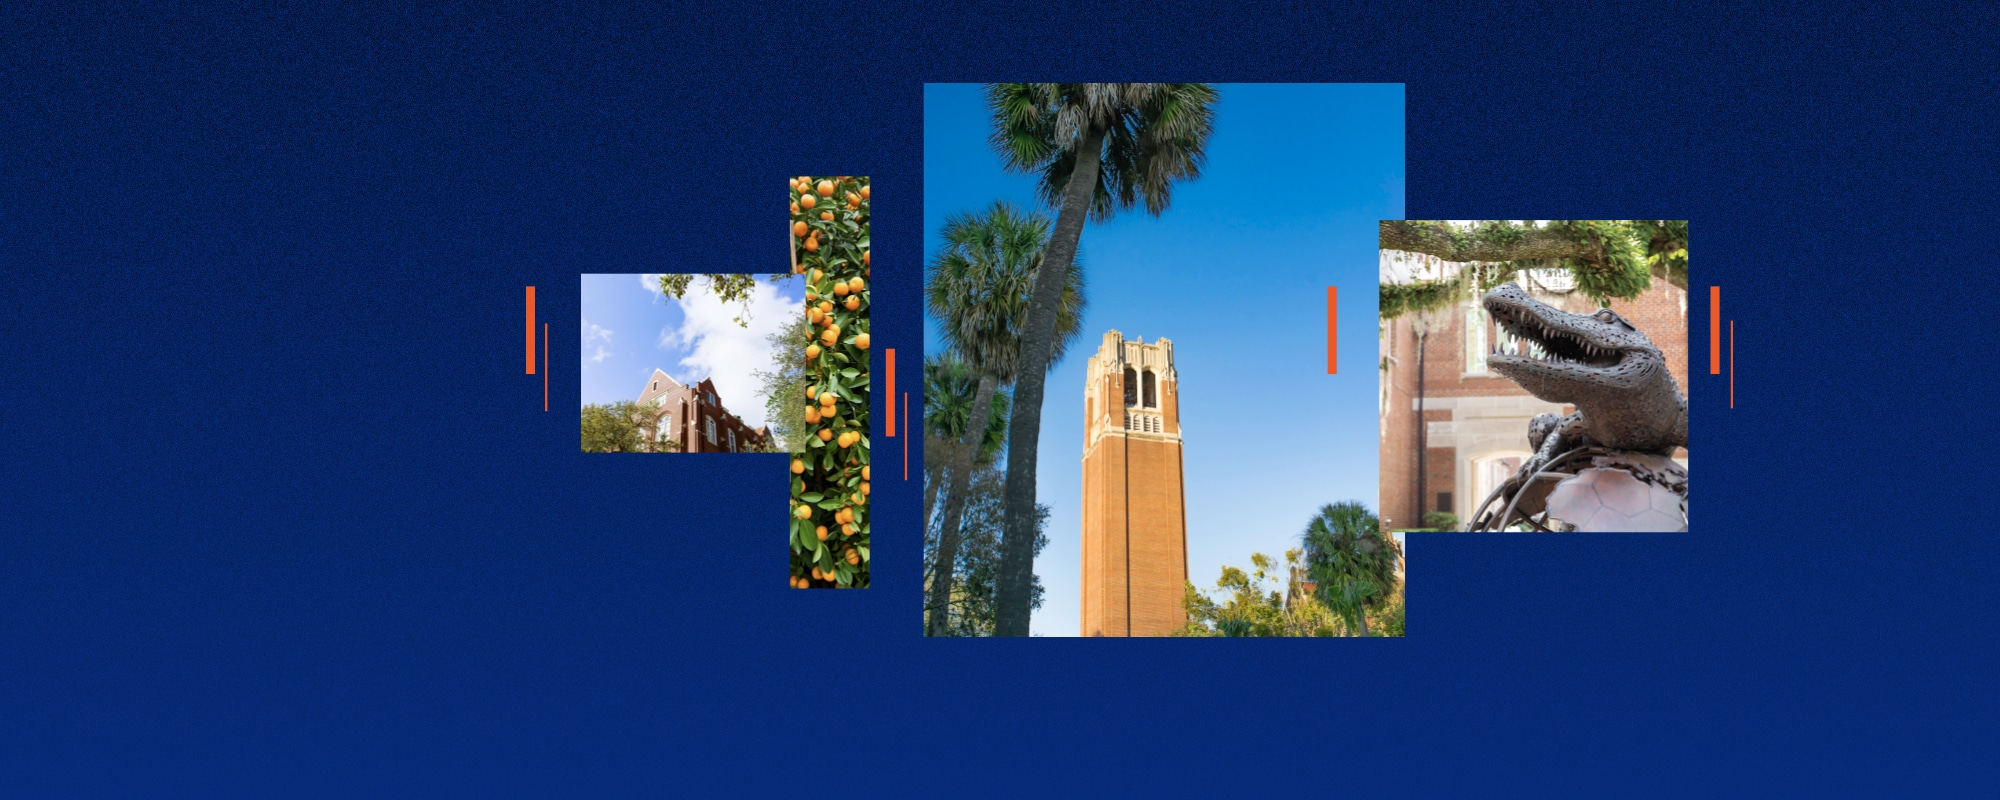 Blue background with images of a large tower, bronze gator statue and campus imagery